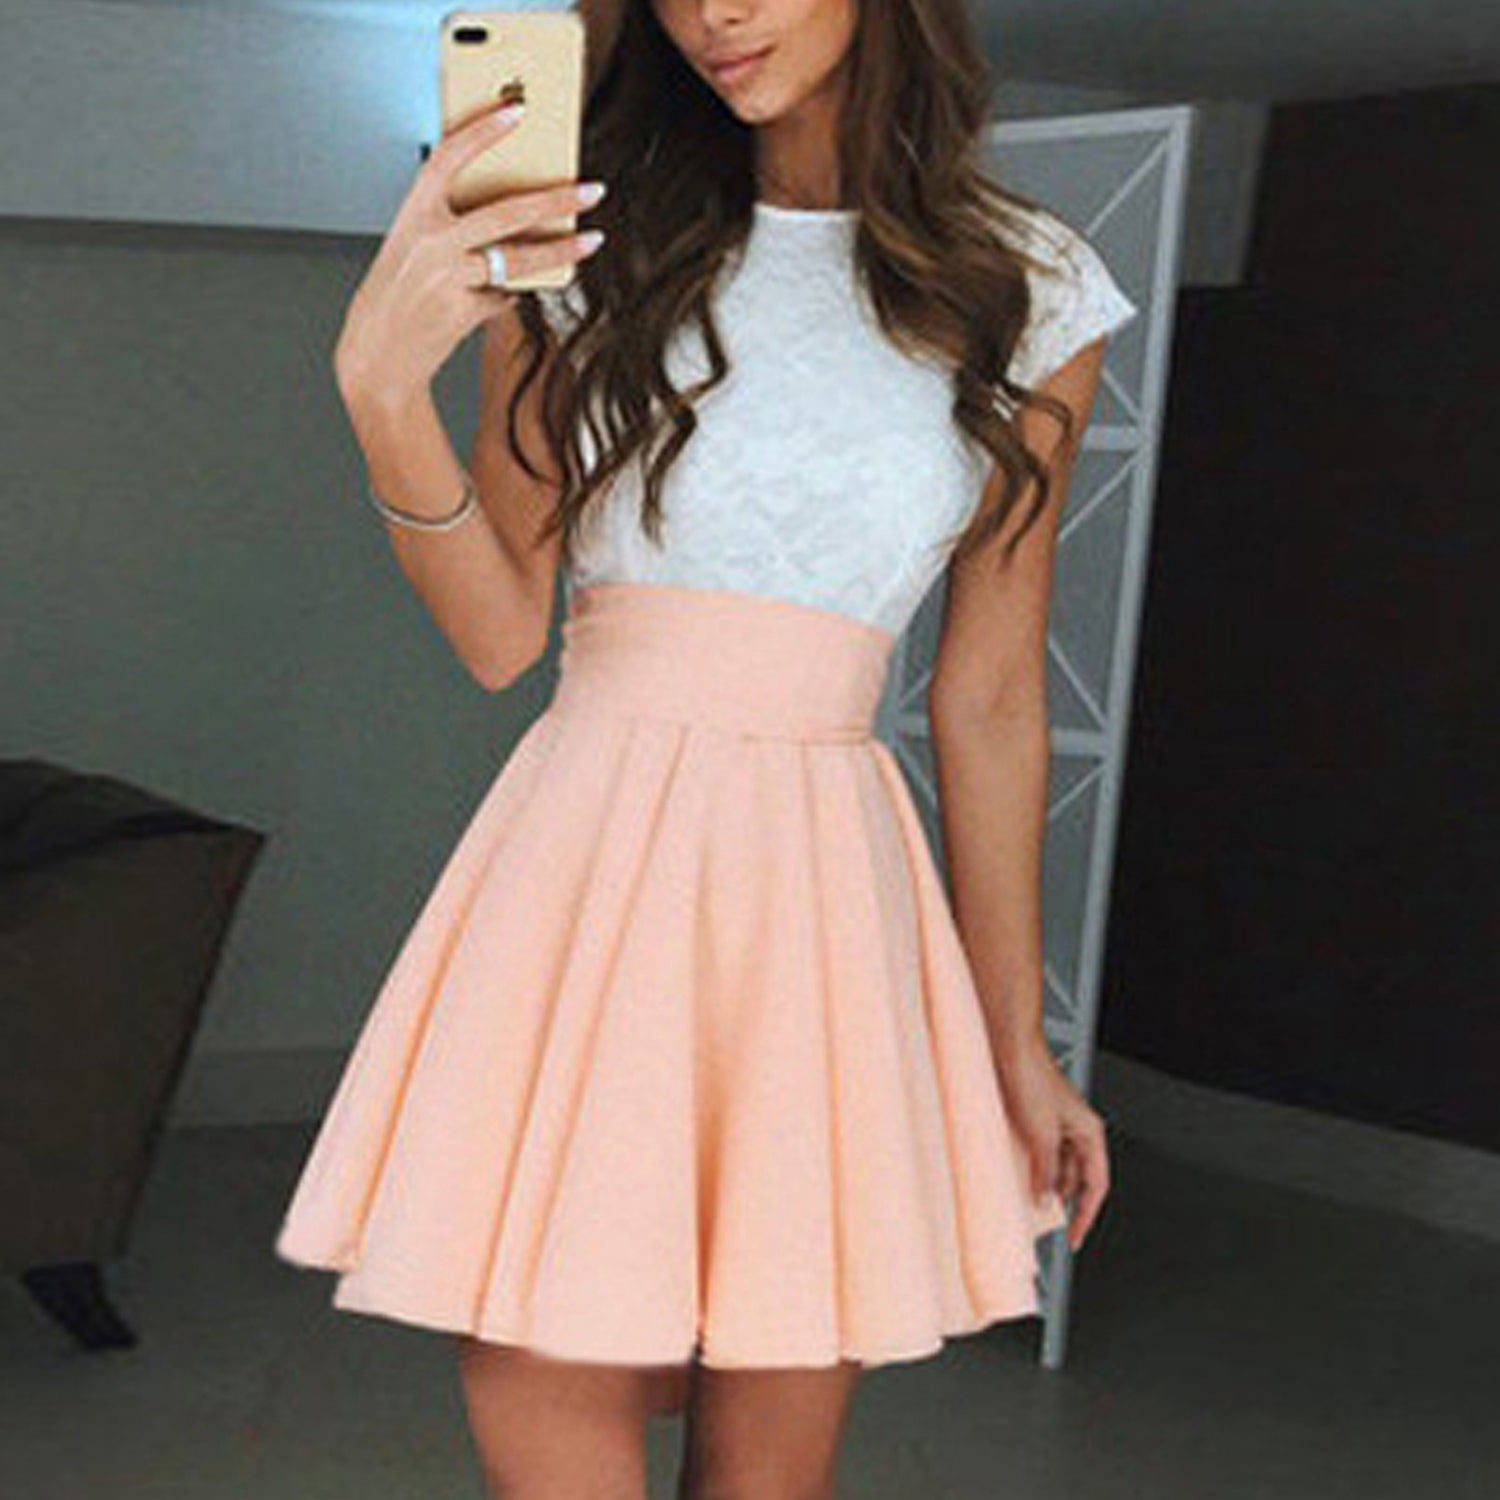 a0db6f321fda46 Cute Skater Skirts Outfits